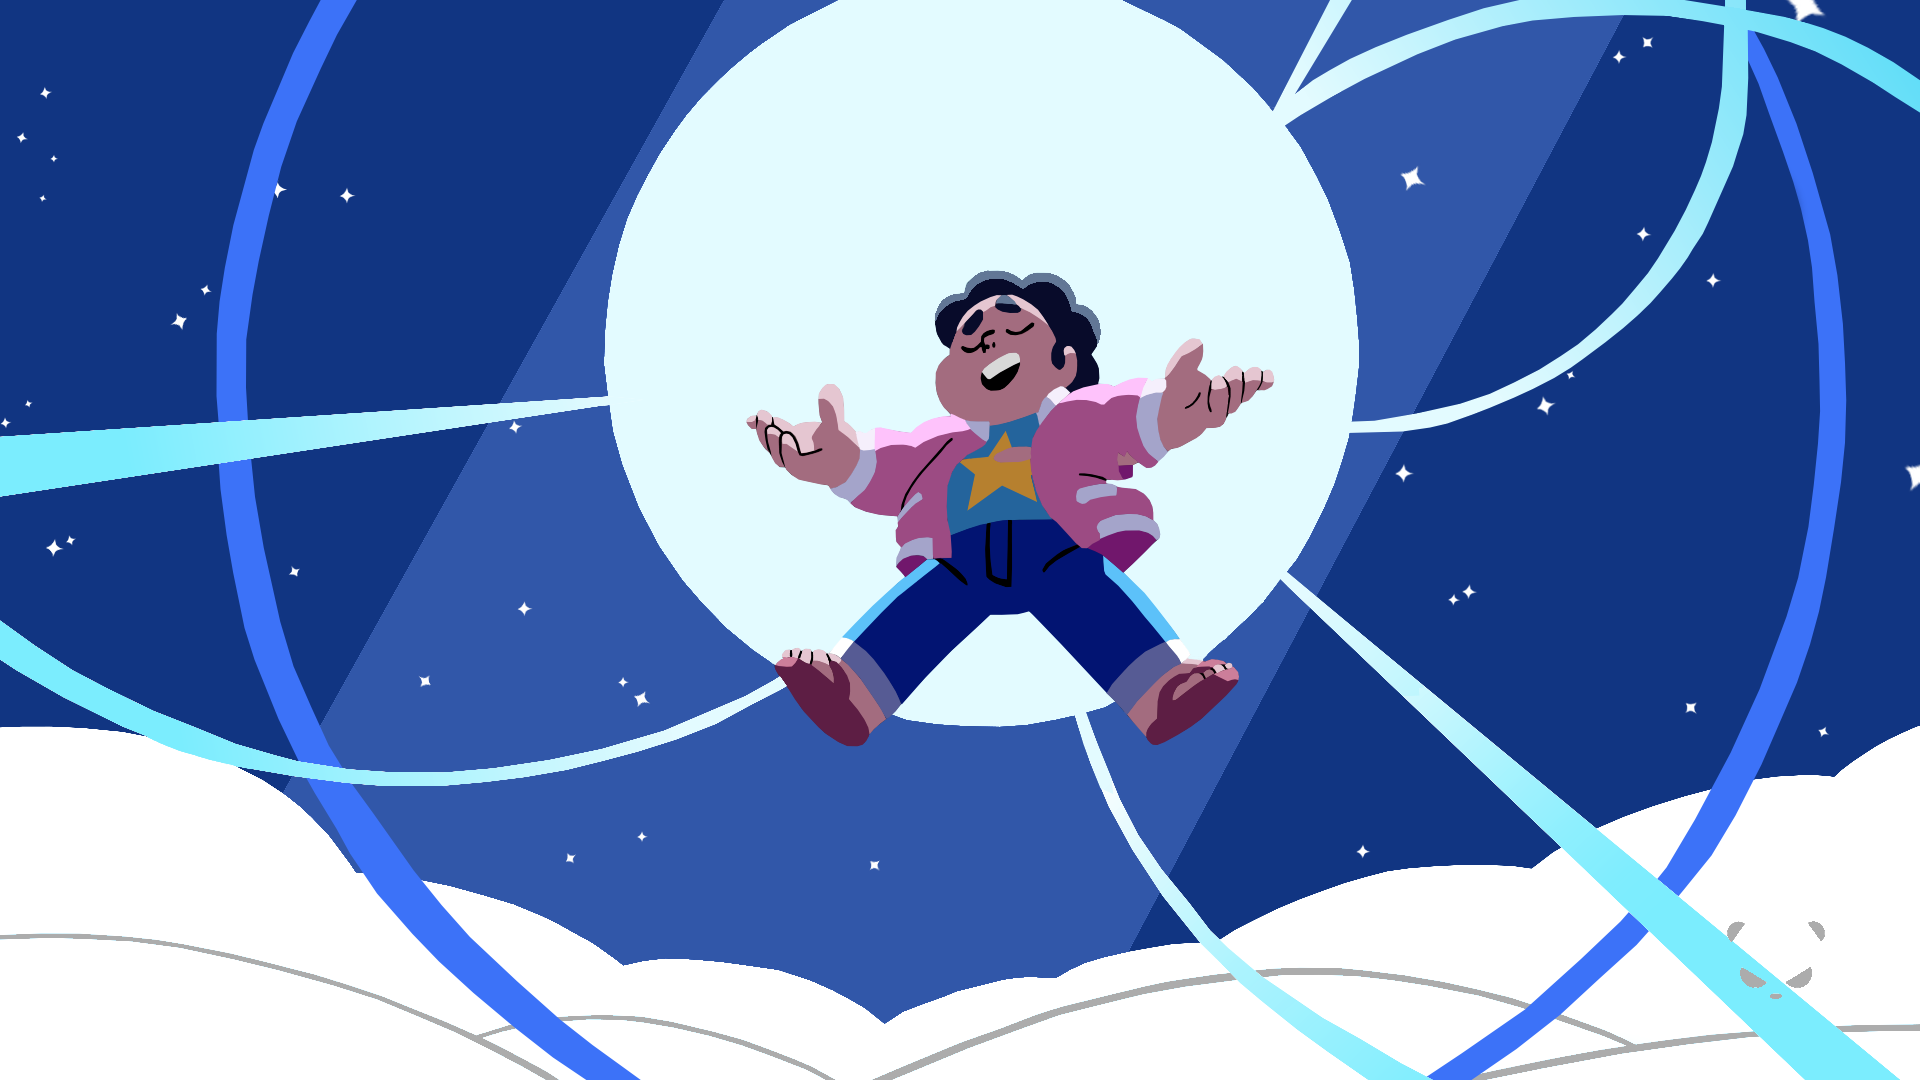 Finding the Perfect Steven Universe Wallpaper